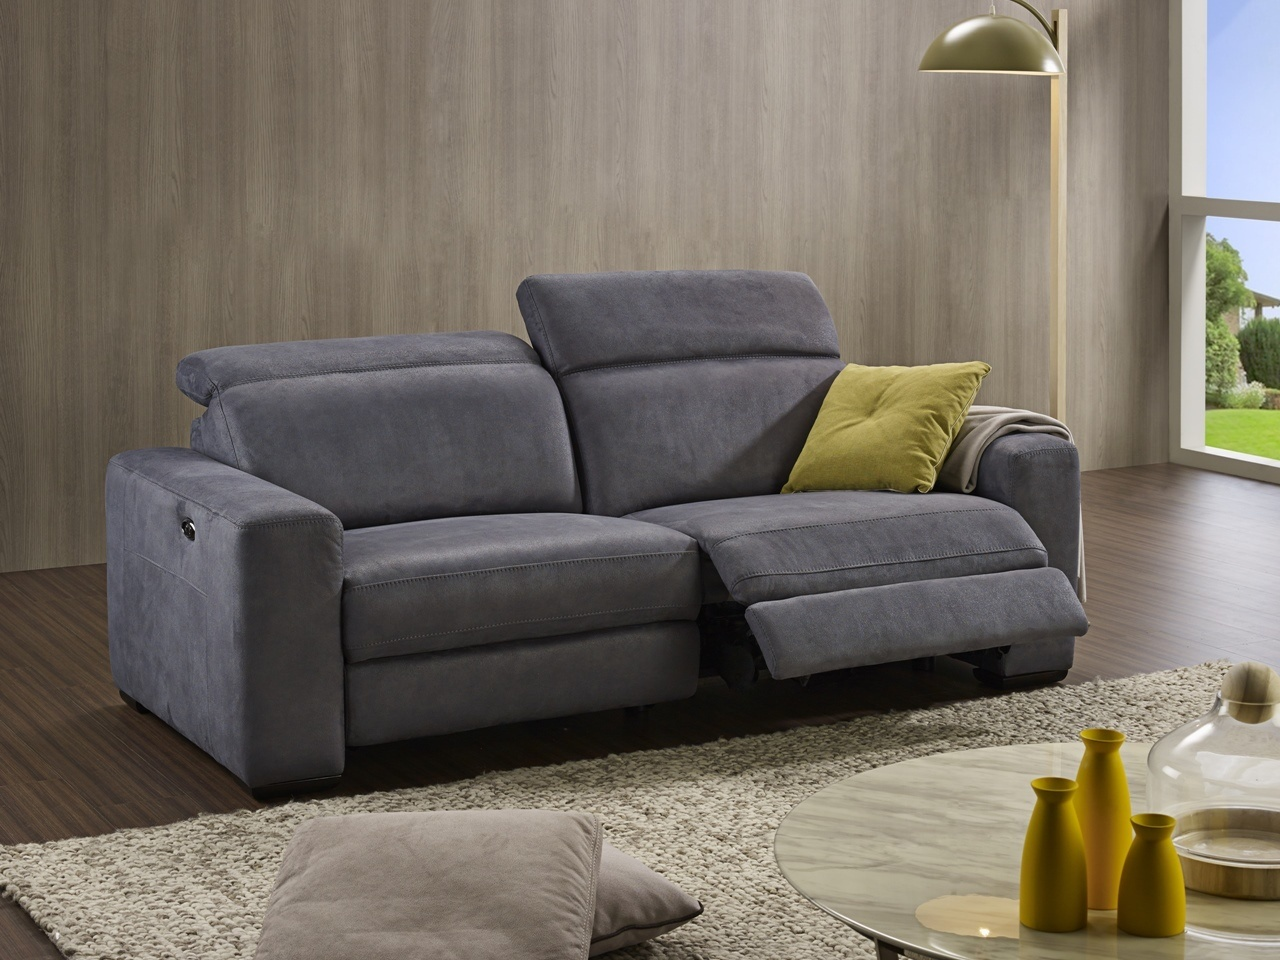 Great Sofa Outlet With Sofa Outlet